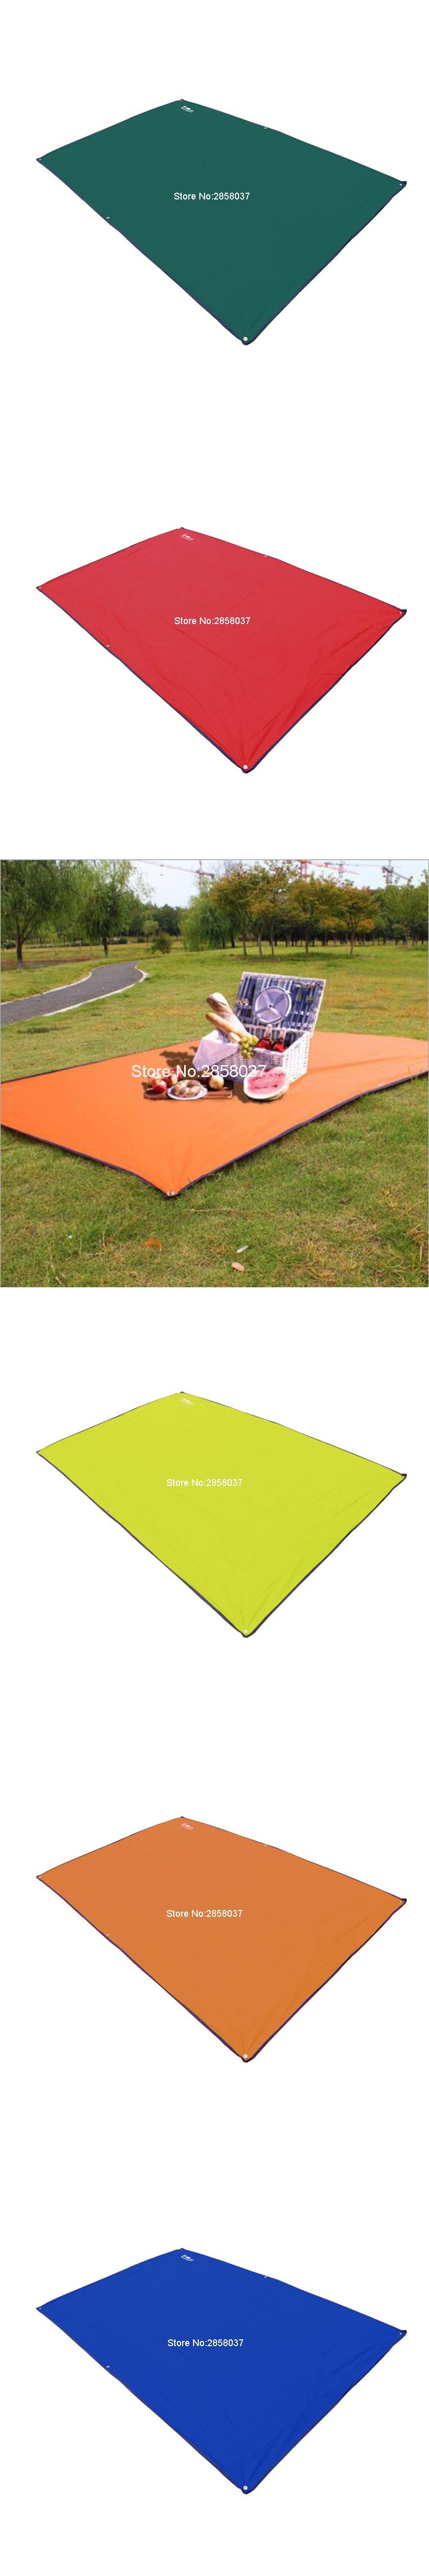 amazon mat products outdoor plastic rei foam storehobbys camping foldable walmart folding